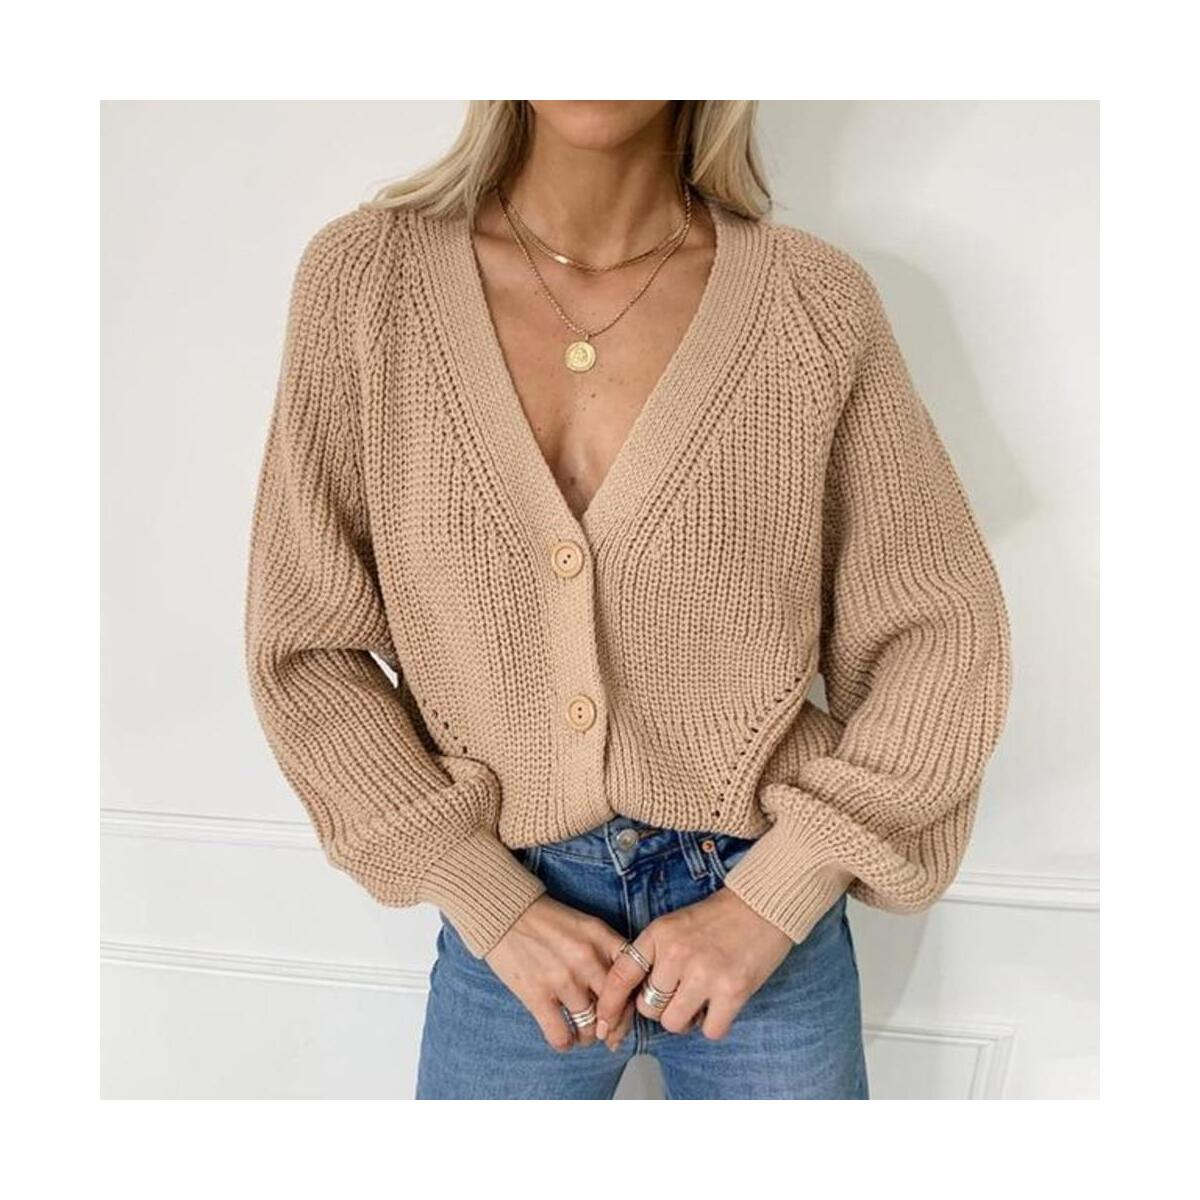 Knitting Sweater Coat